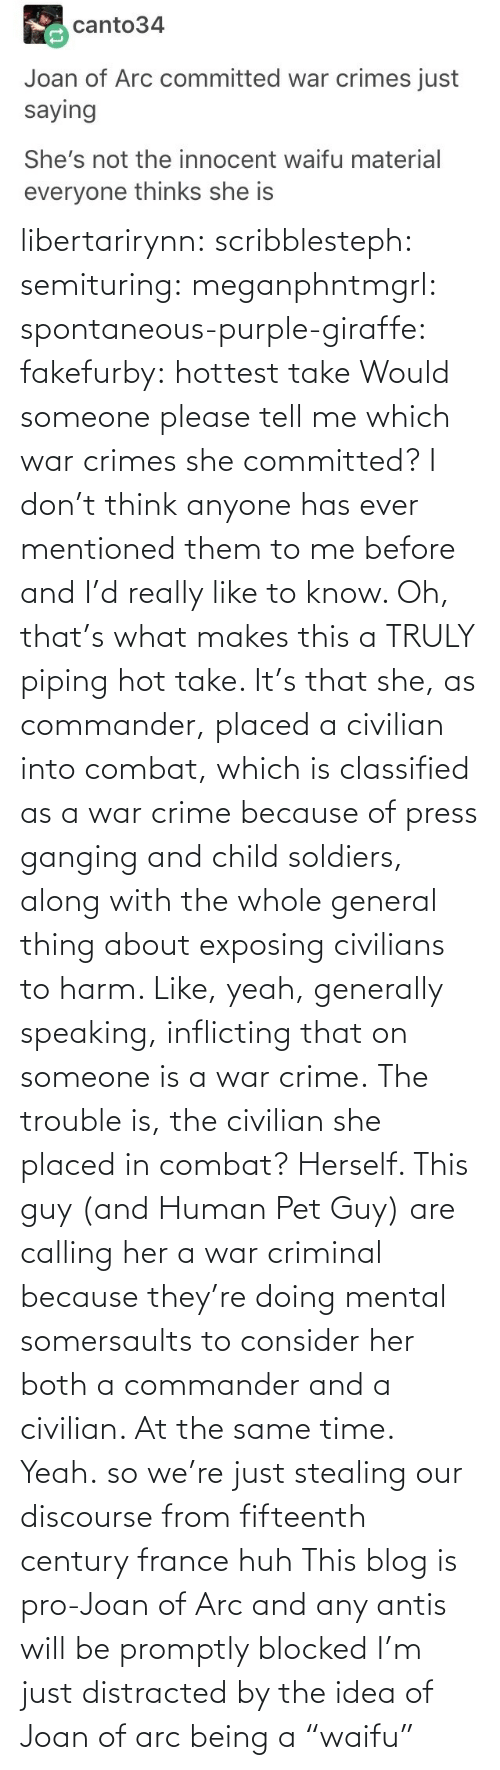 "she: libertarirynn: scribblesteph:  semituring:  meganphntmgrl:  spontaneous-purple-giraffe:   fakefurby: hottest take  Would someone please tell me which war crimes she committed? I don't think anyone has ever mentioned them to me before and I'd really like to know.    Oh, that's what makes this a TRULY piping hot take. It's that she, as commander, placed a civilian into combat, which is classified as a war crime because of press ganging and child soldiers, along with the whole general thing about exposing civilians to harm. Like, yeah, generally speaking, inflicting that on someone is a war crime. The trouble is, the civilian she placed in combat? Herself.  This guy (and Human Pet Guy) are calling her a war criminal because they're doing mental somersaults to consider her both a commander and a civilian. At the same time.  Yeah.  so we're just stealing our discourse from fifteenth century france huh   This blog is pro-Joan of Arc and any antis will be promptly blocked   I'm just distracted by the idea of Joan of arc being a ""waifu"""